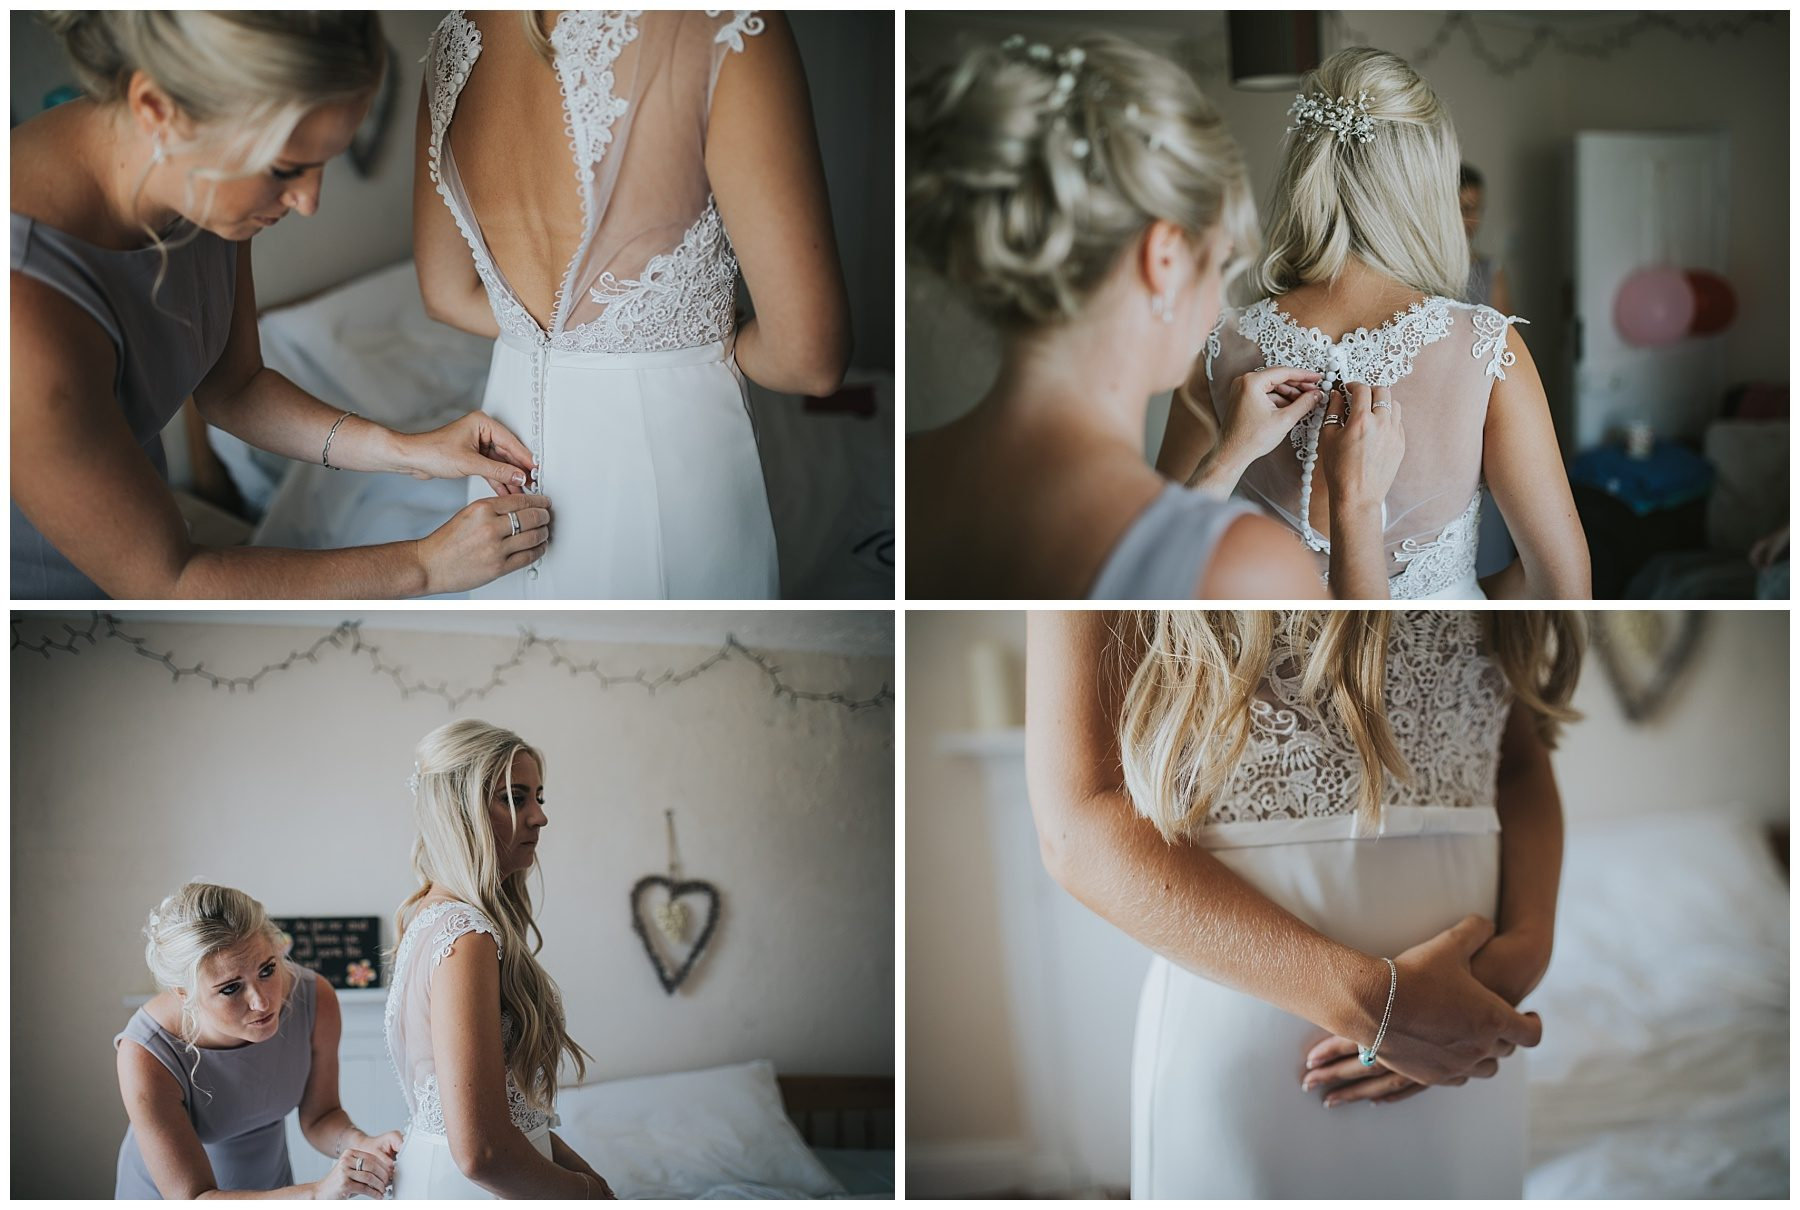 Bride getting lace dress put on